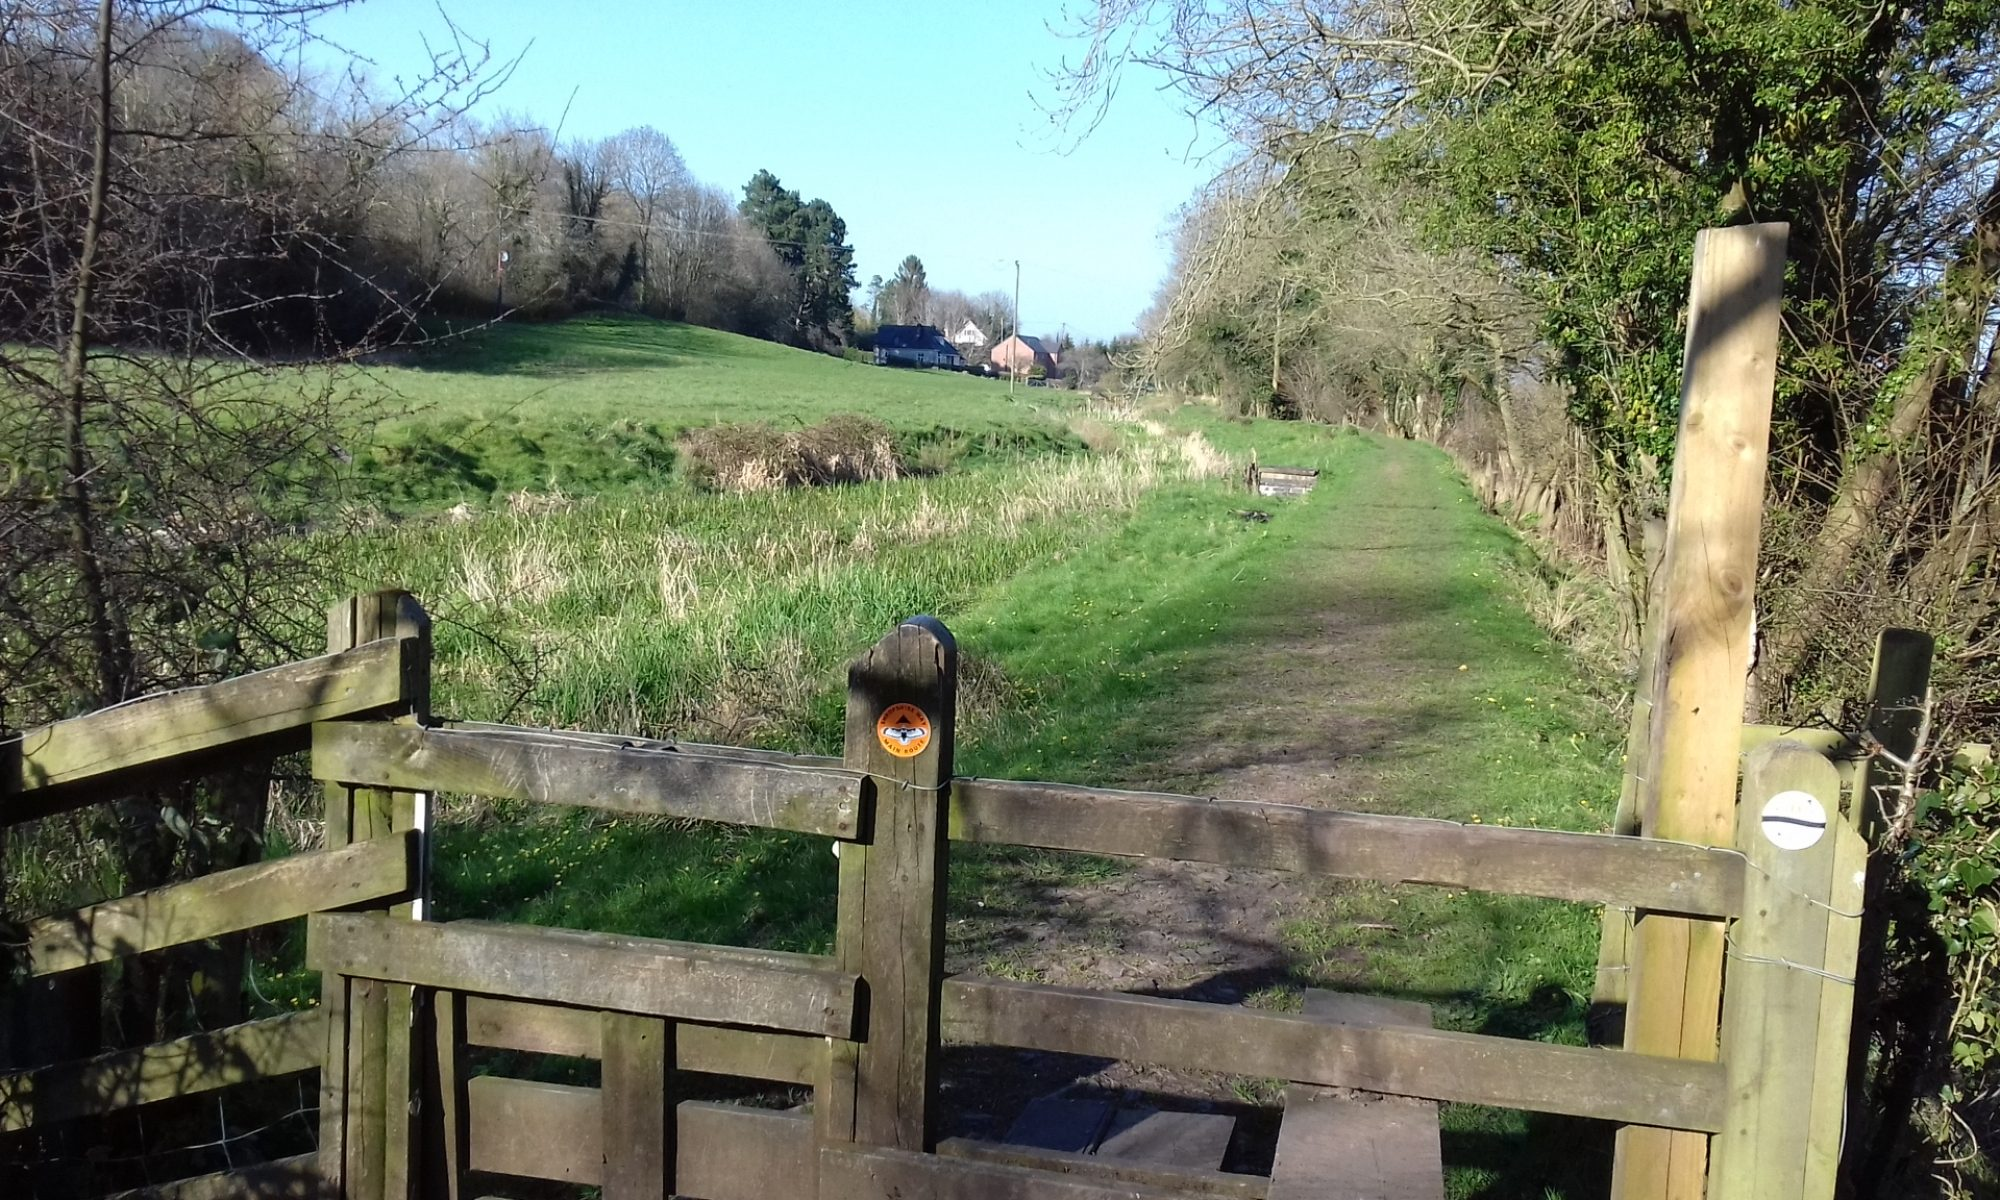 Pant Today - About the village of Pant in Shropshire